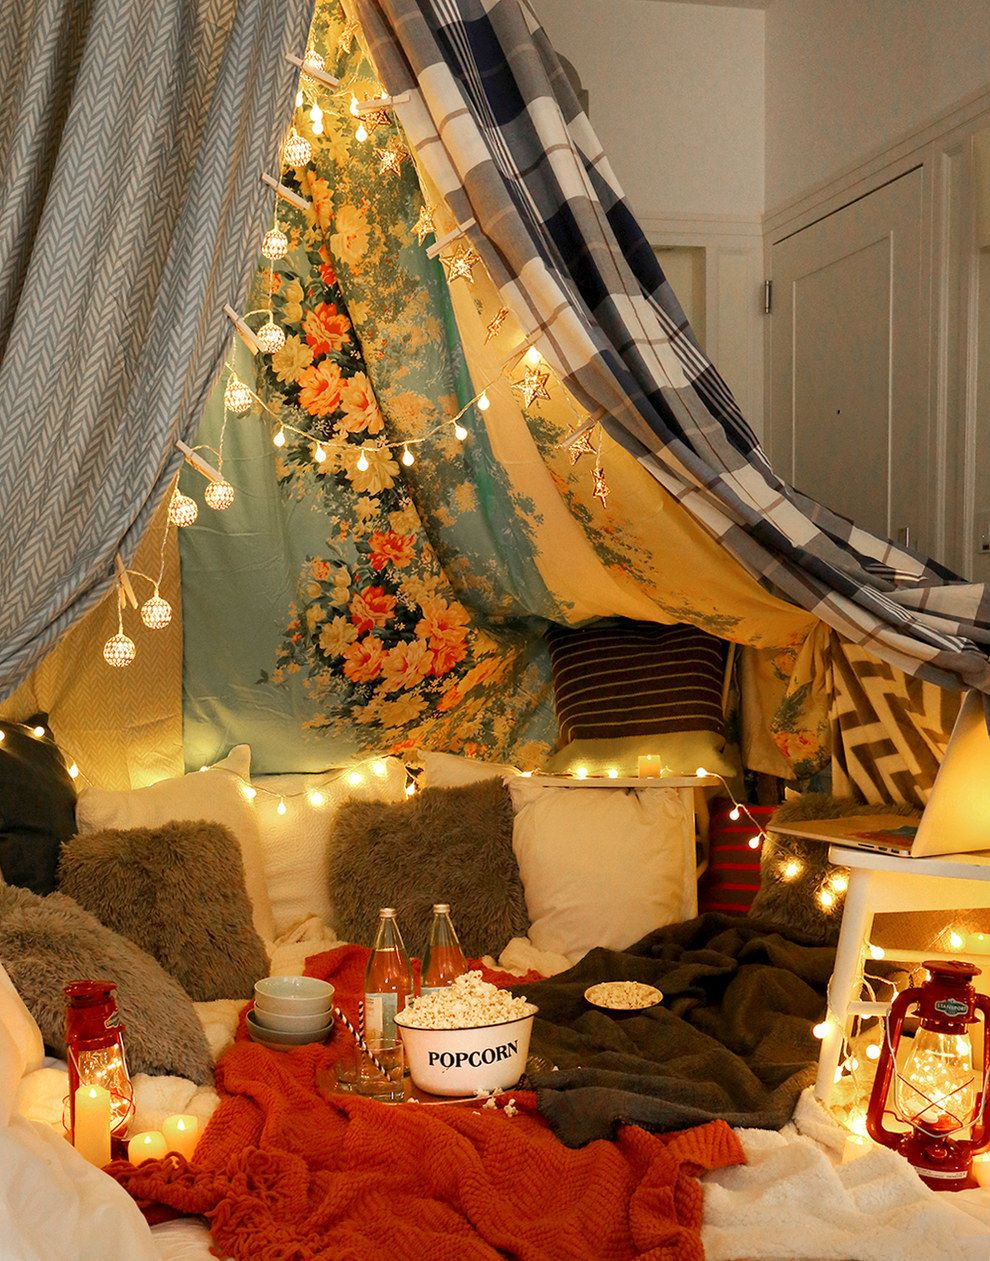 6 steps to having the blanket fort movie night of your dreams | my